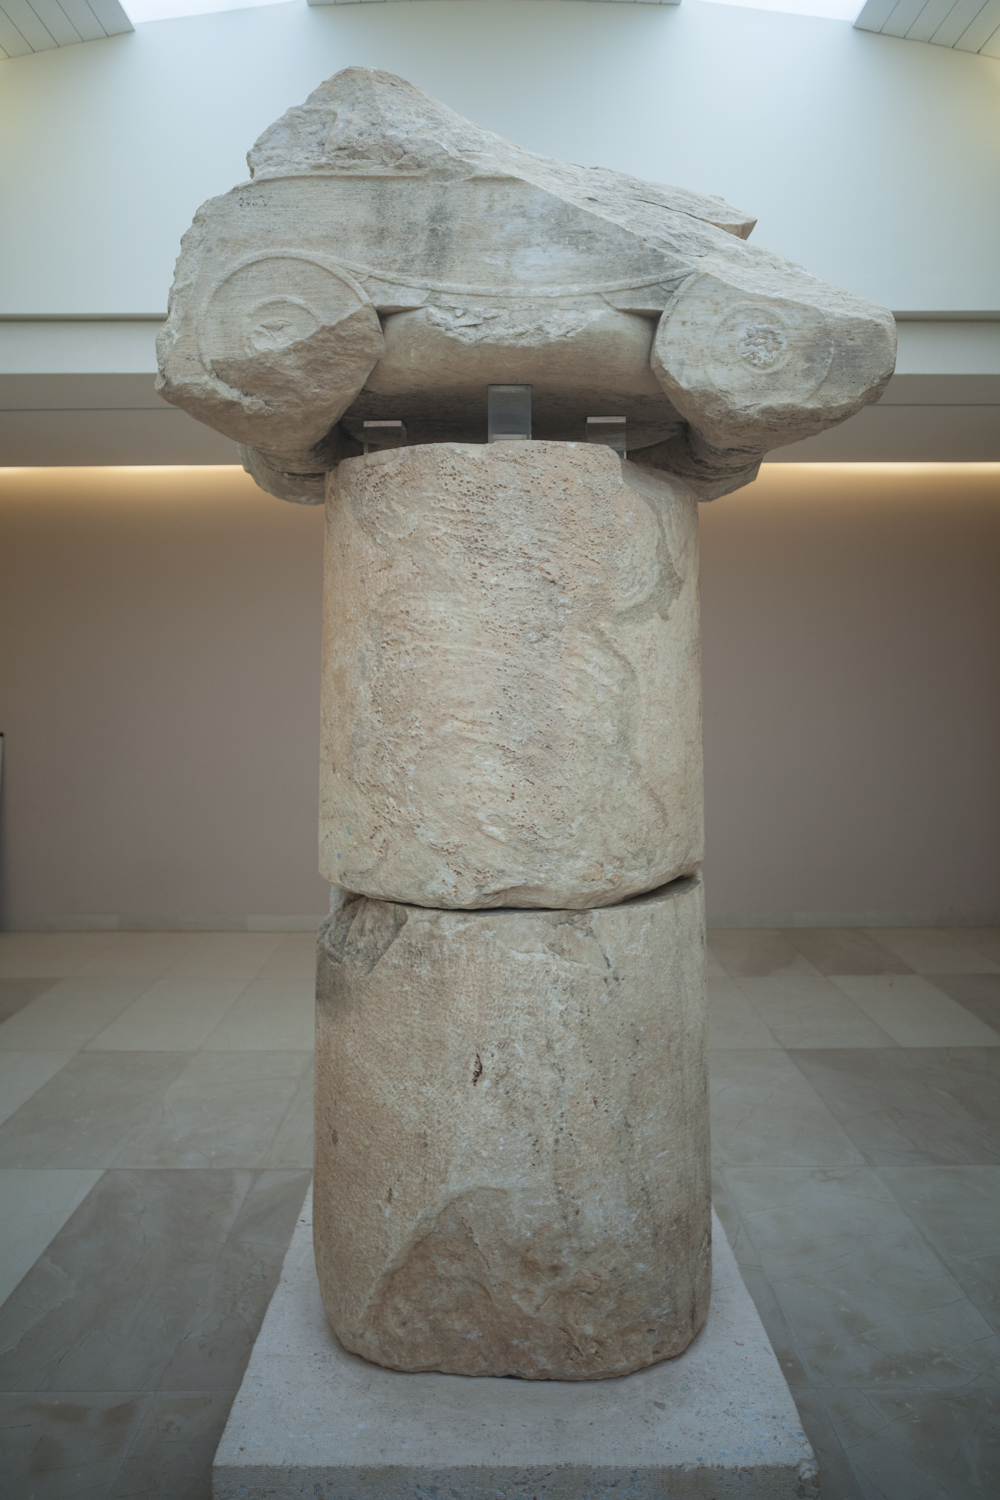 Trophy column erected by the Athenians after their victory at the Battle of Marathon. Seen here in Marathon's Archaeological Museum.